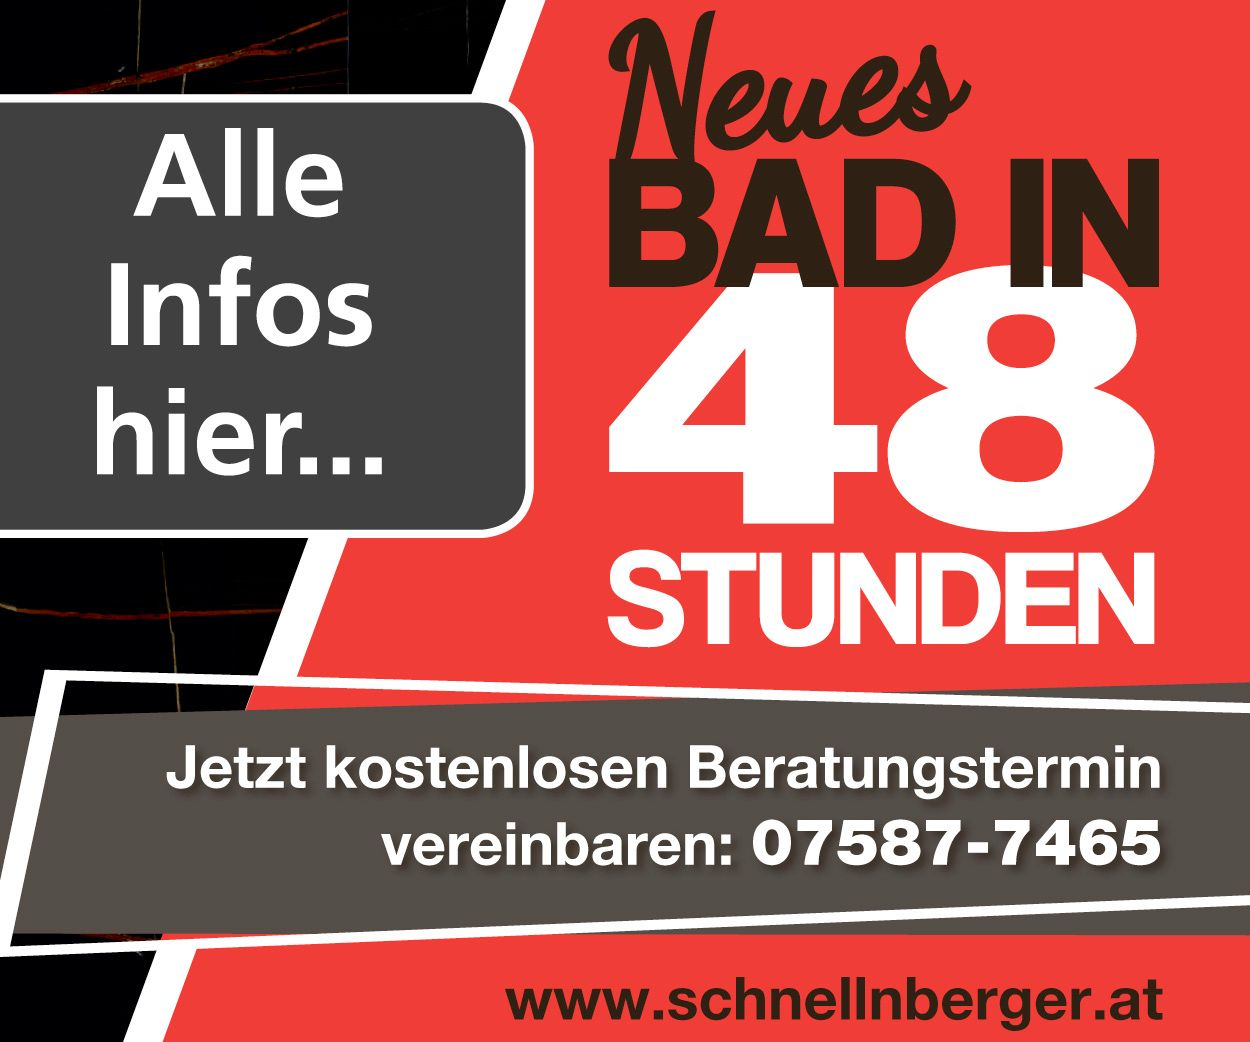 W20 Neues Bad in 48h